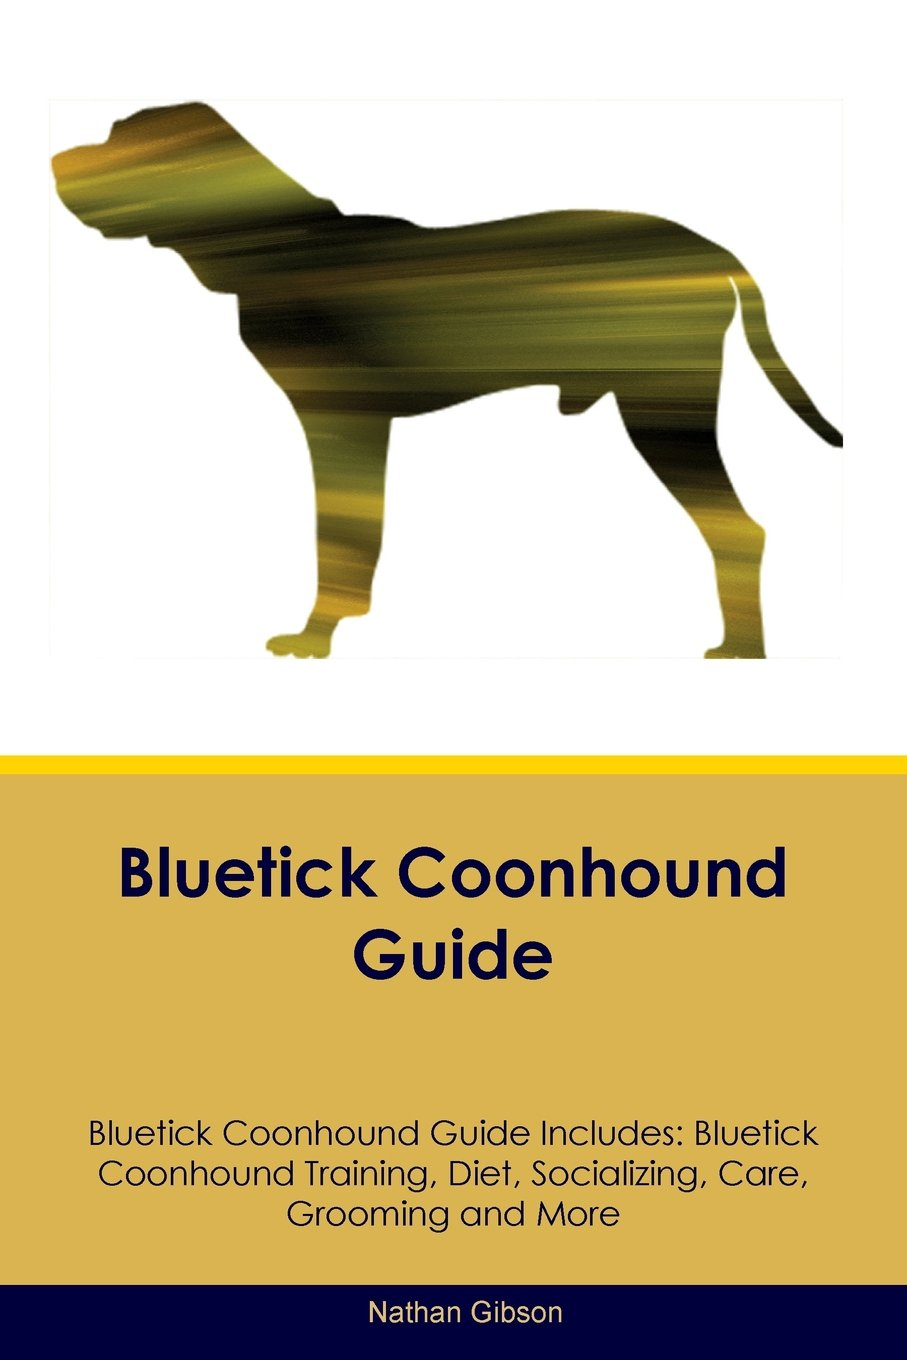 Bluetick Coonhound Guide Bluetick Coonhound Guide Includes: Bluetick Coonhound Training, Diet, Socializing, Care, Grooming, Breeding and More